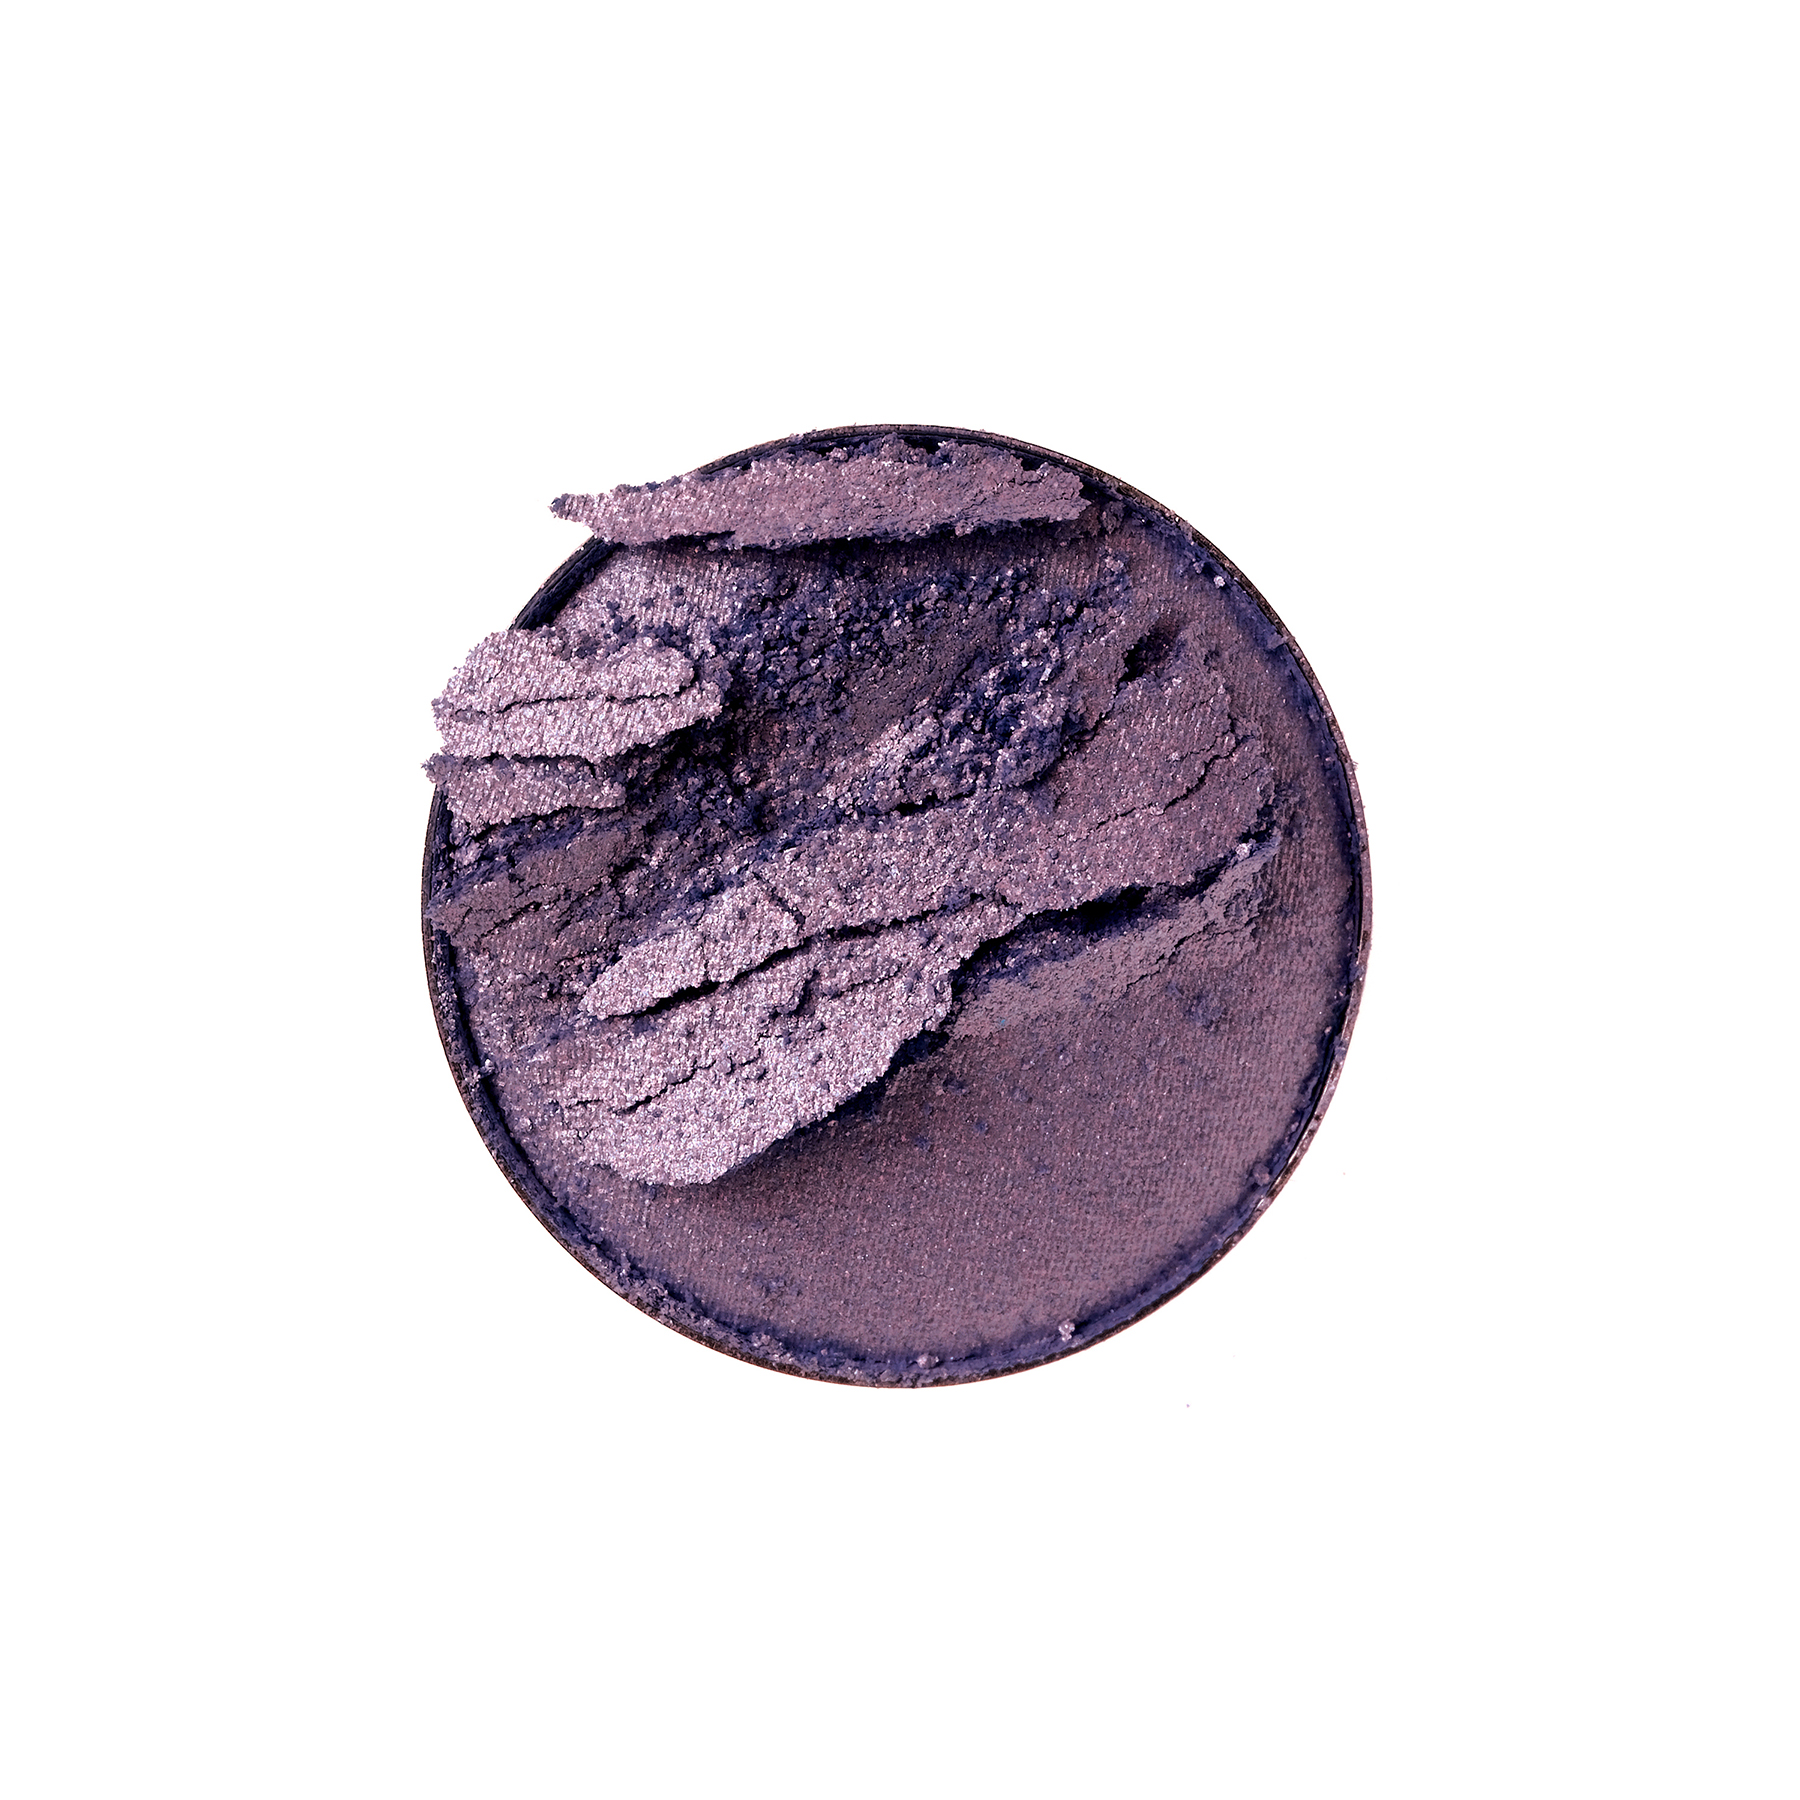 Broken purple eyeshadow